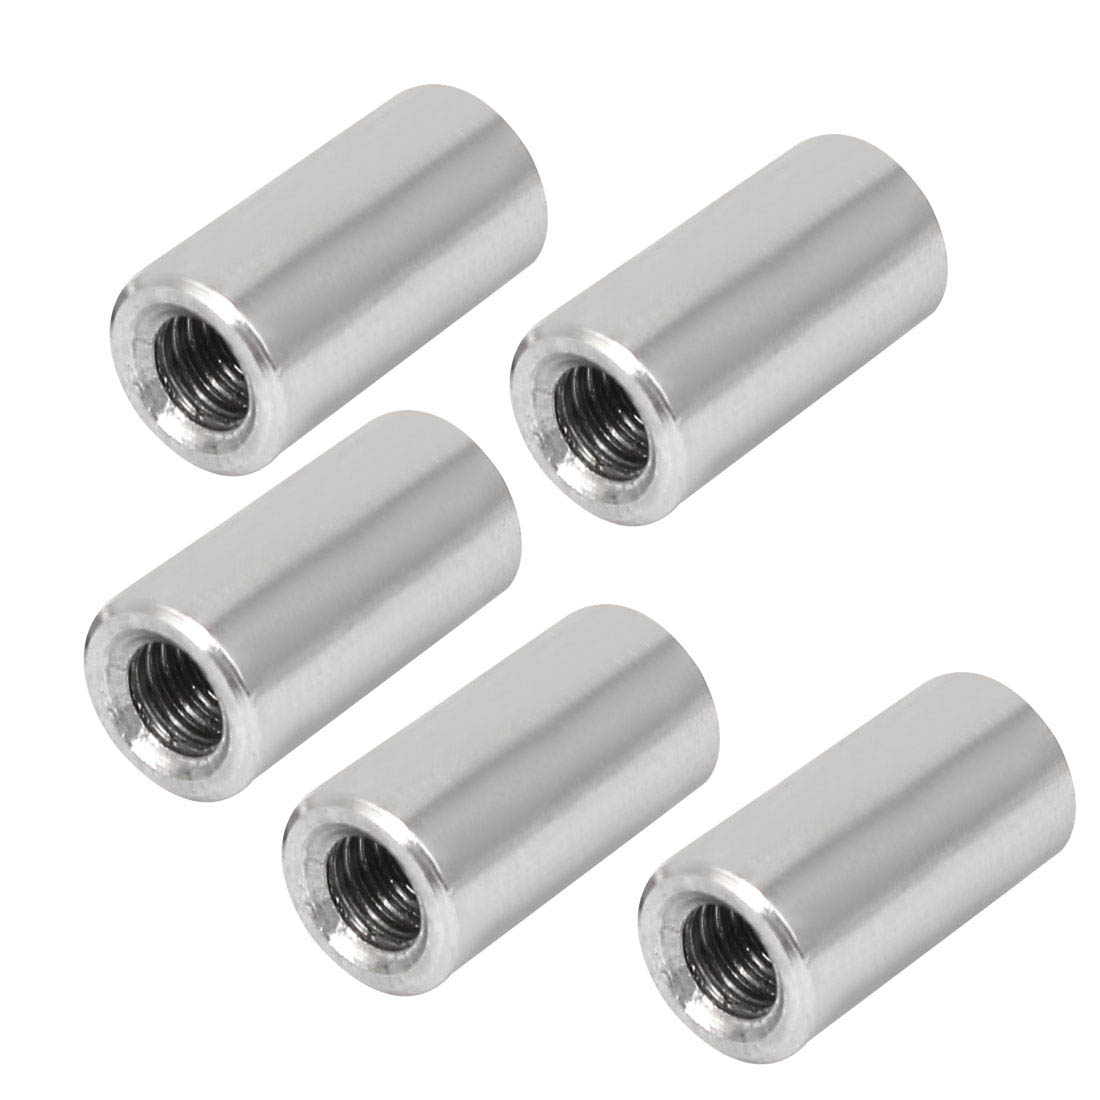 10Pcs M6 Rose Joint Adapter Threaded Round Connector Nuts 304 stainless steel Threaded Sleeve Rod bar Stud Round Connector Nuts